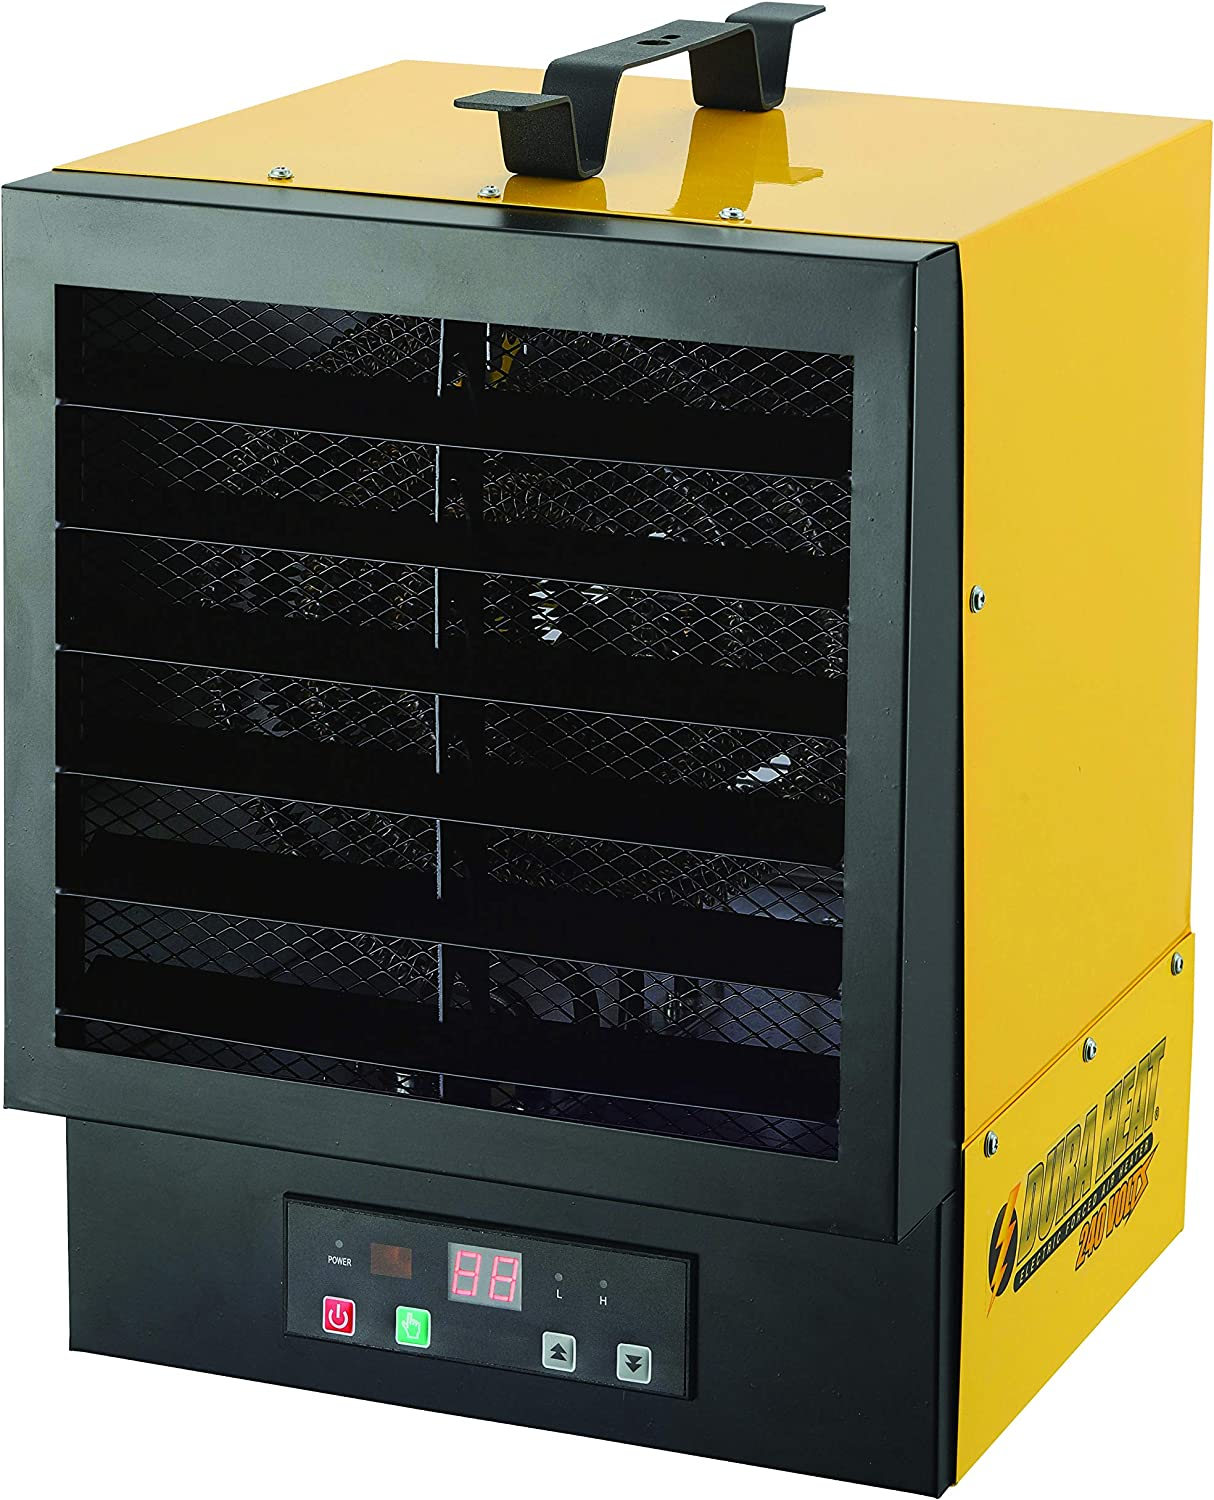 Dura Heat Electric Garage Heater, Yellow